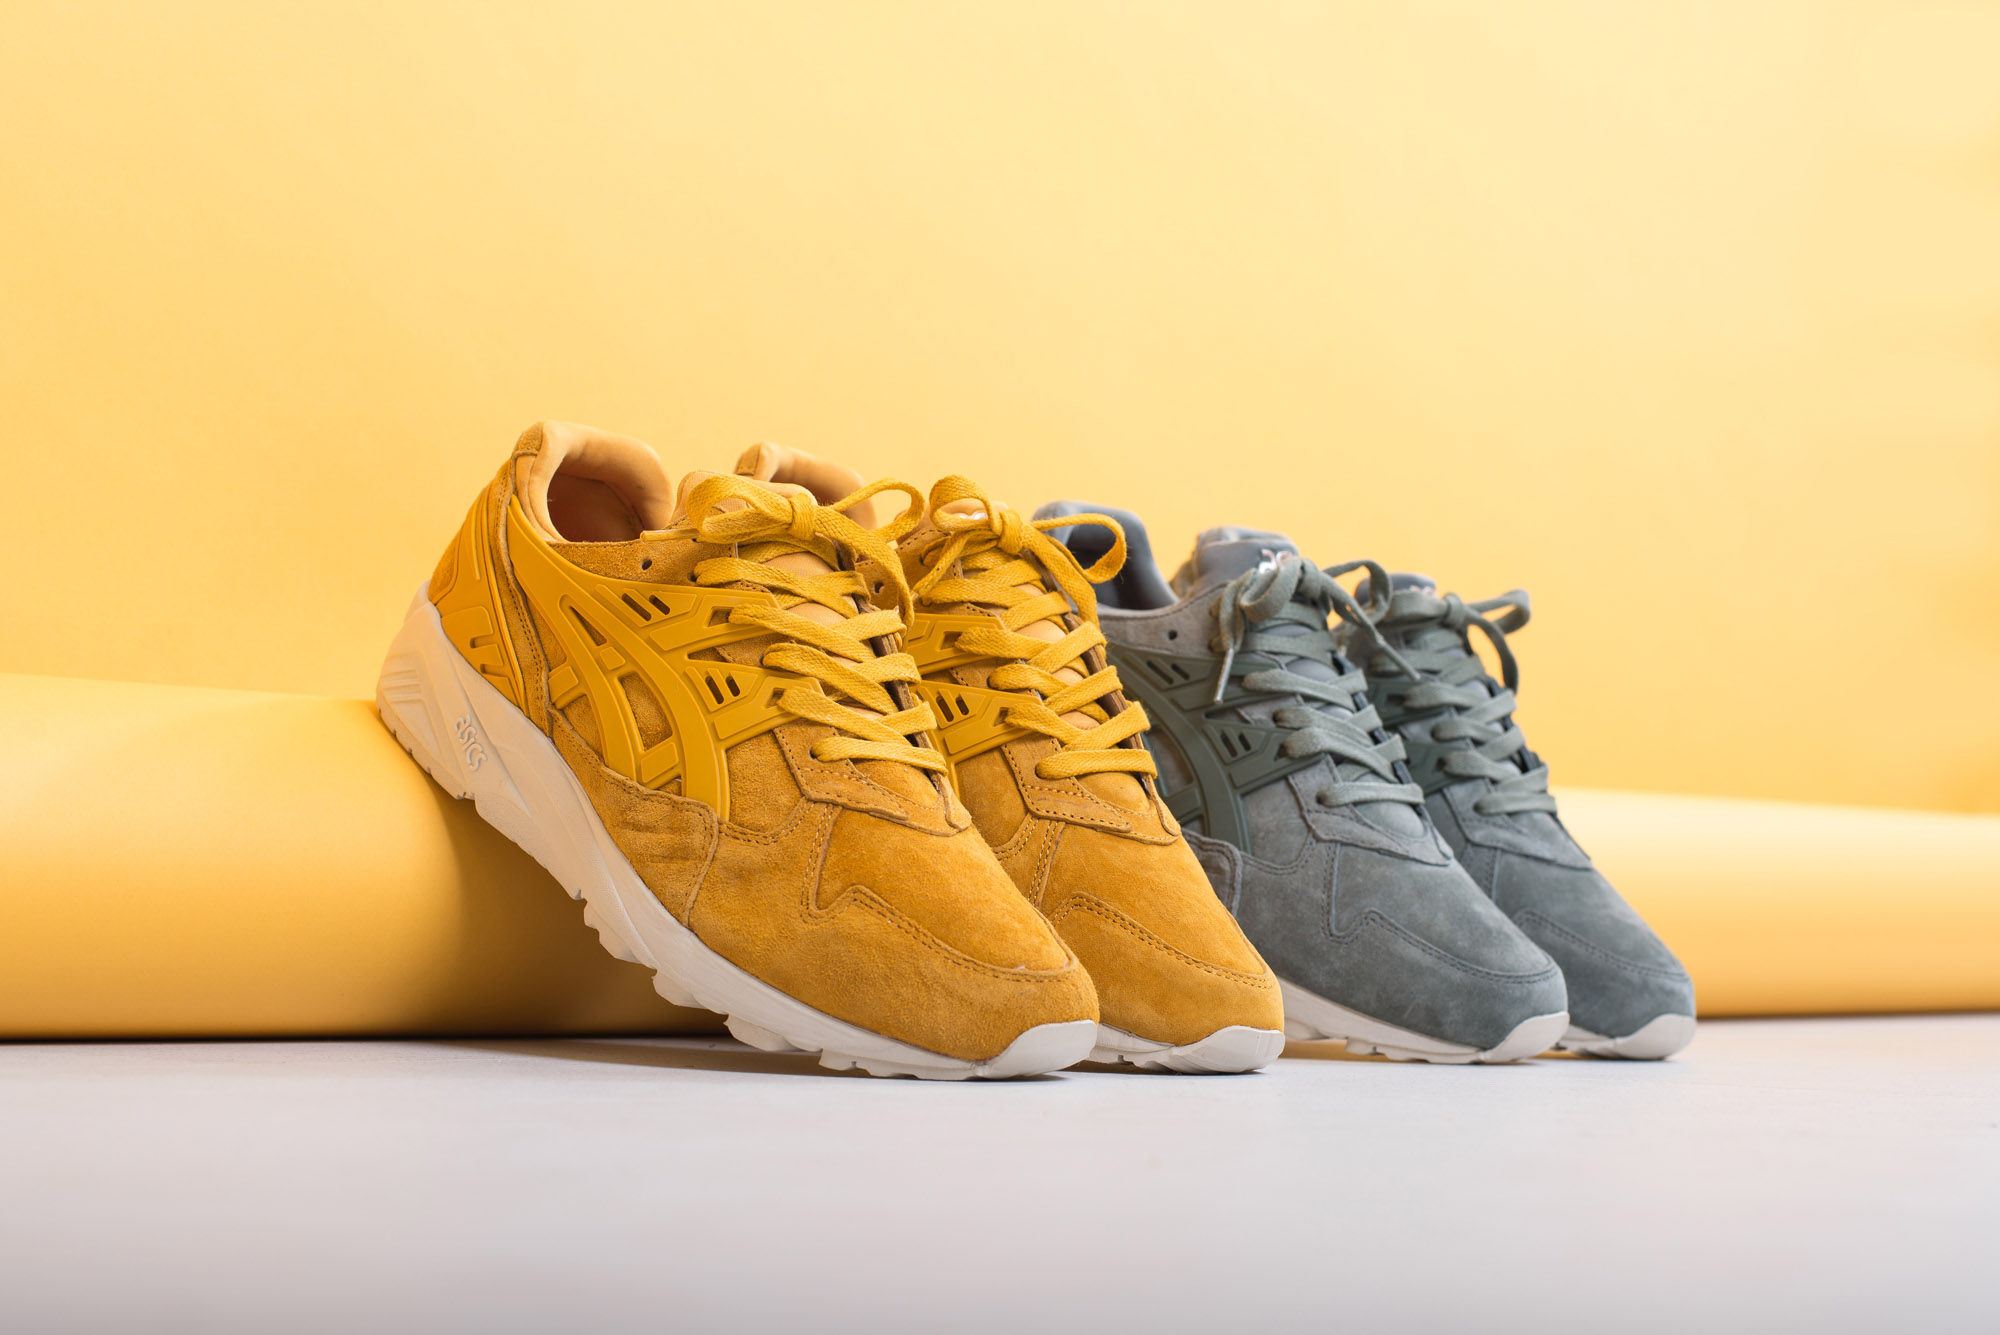 asics Tiger Gel Kayano Trainer Golden Yellow Agave Green 3